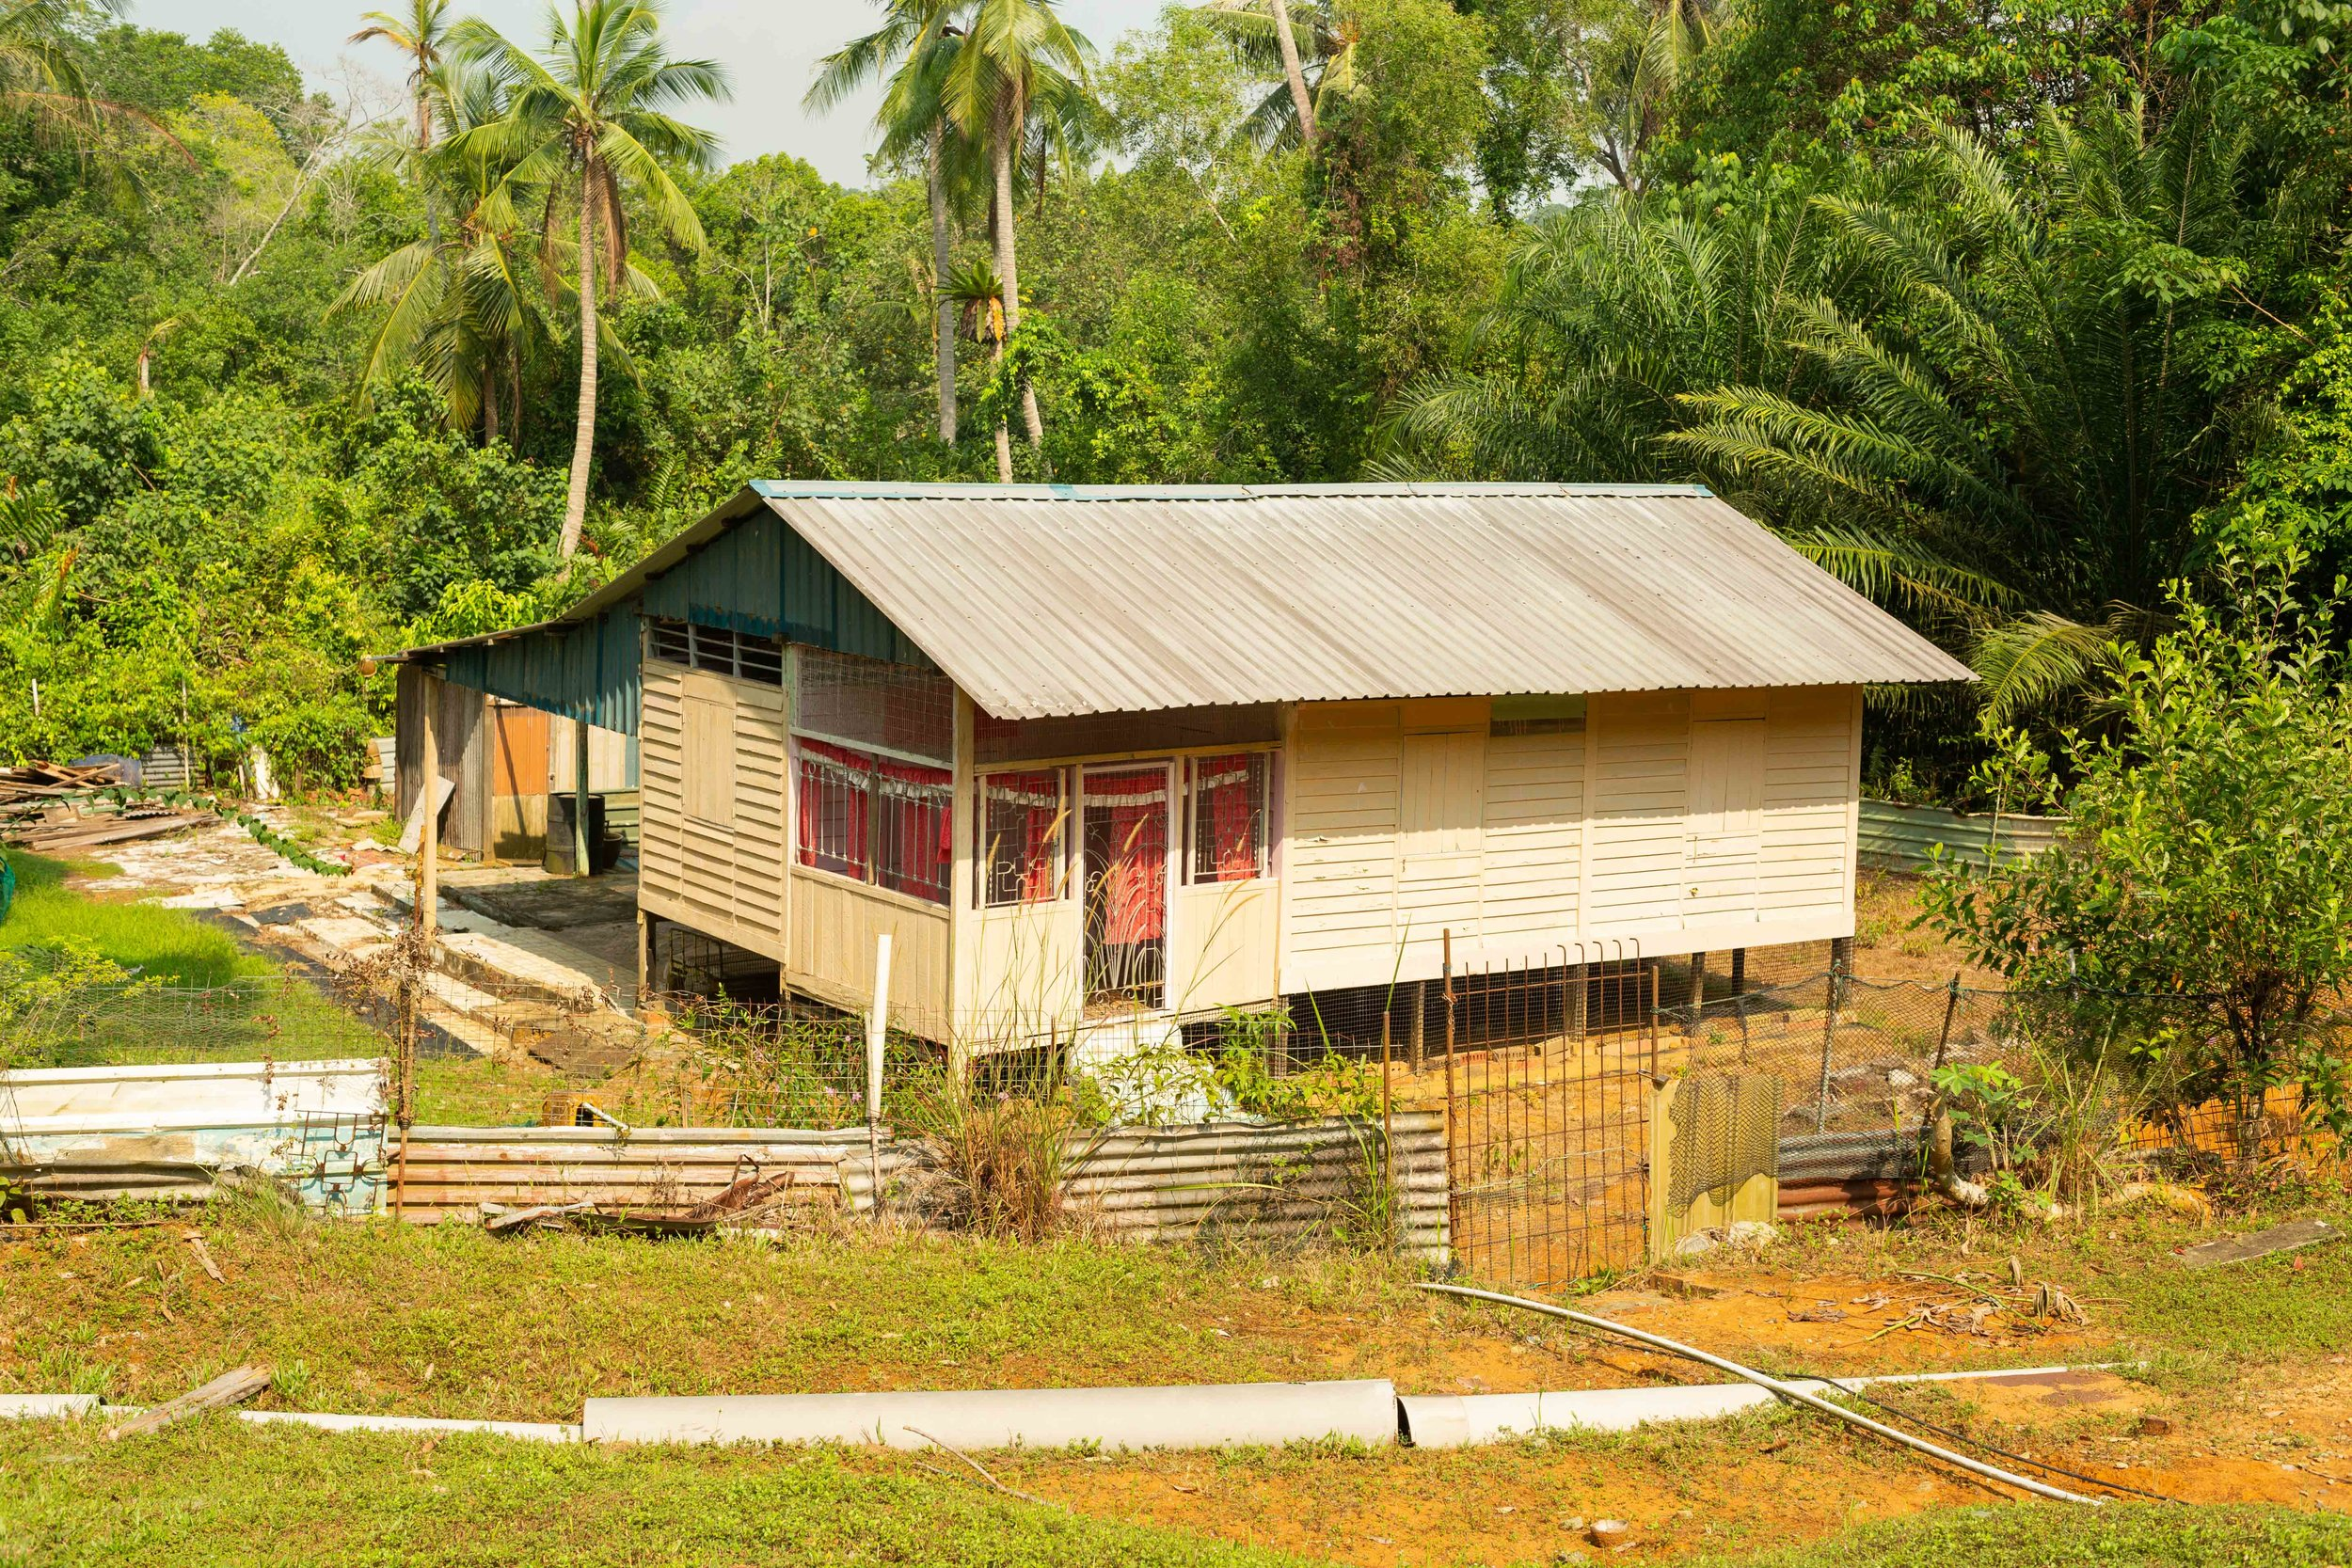 A new kampong home built from funds pooled by the entire community after NParks would not provide funds to restore the existing kampong